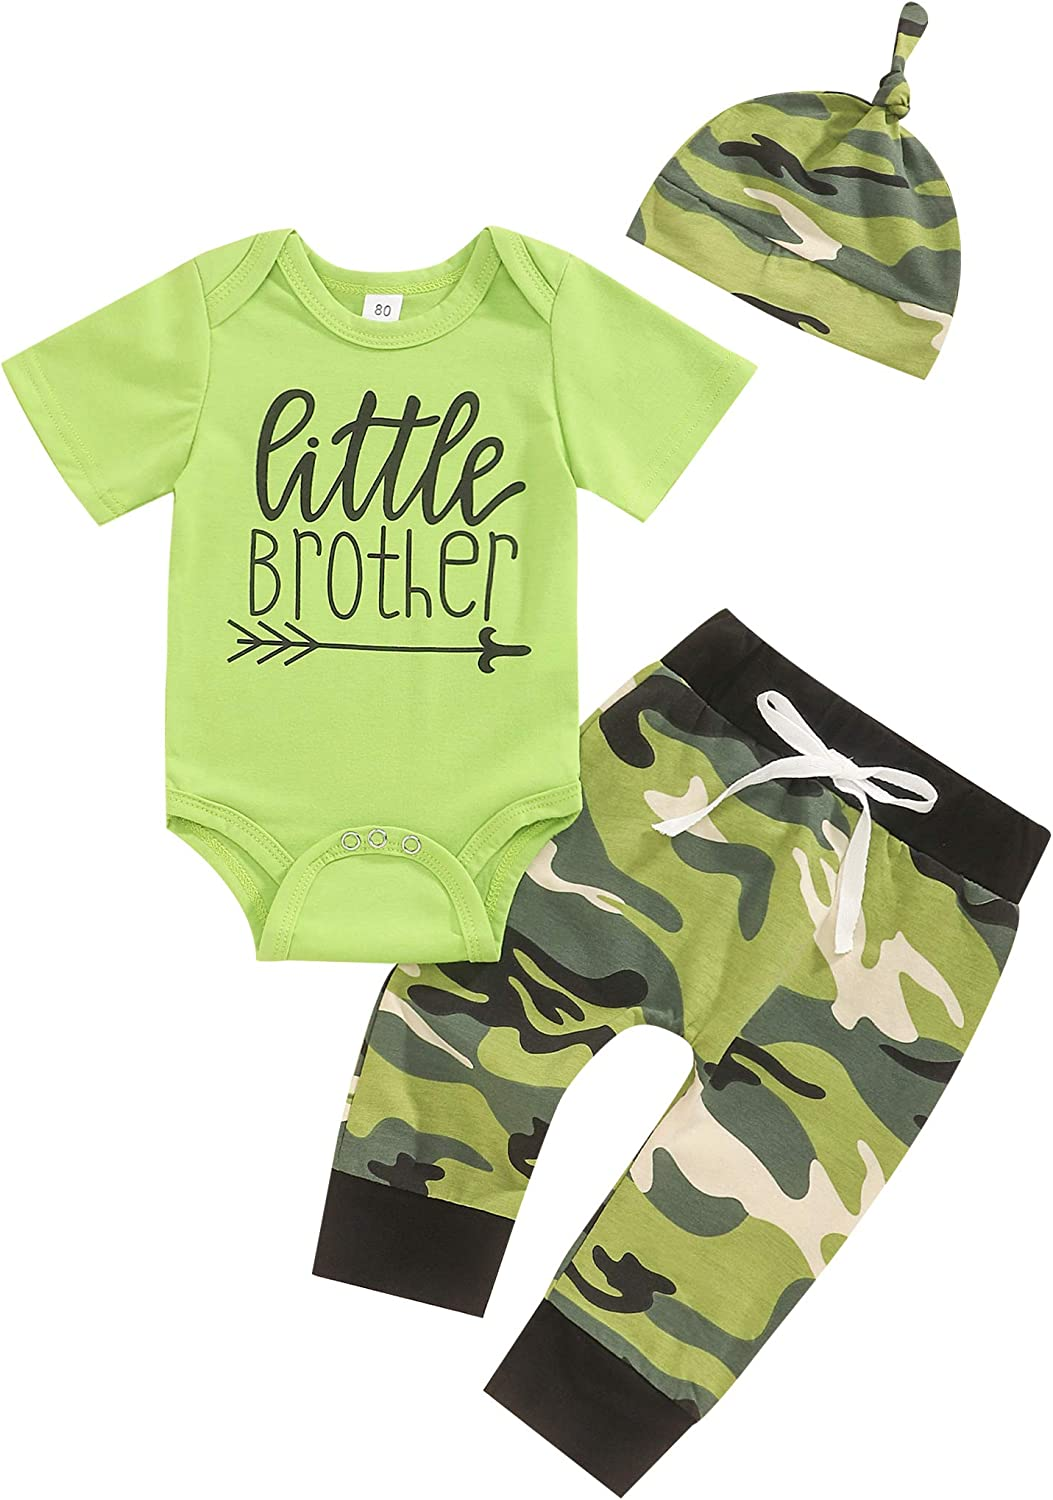 Newborn Baby Boy Clothes Funny Letter Short Sleeve Romper Top and Pants with Hat 3Pcs Summer Outfits Set